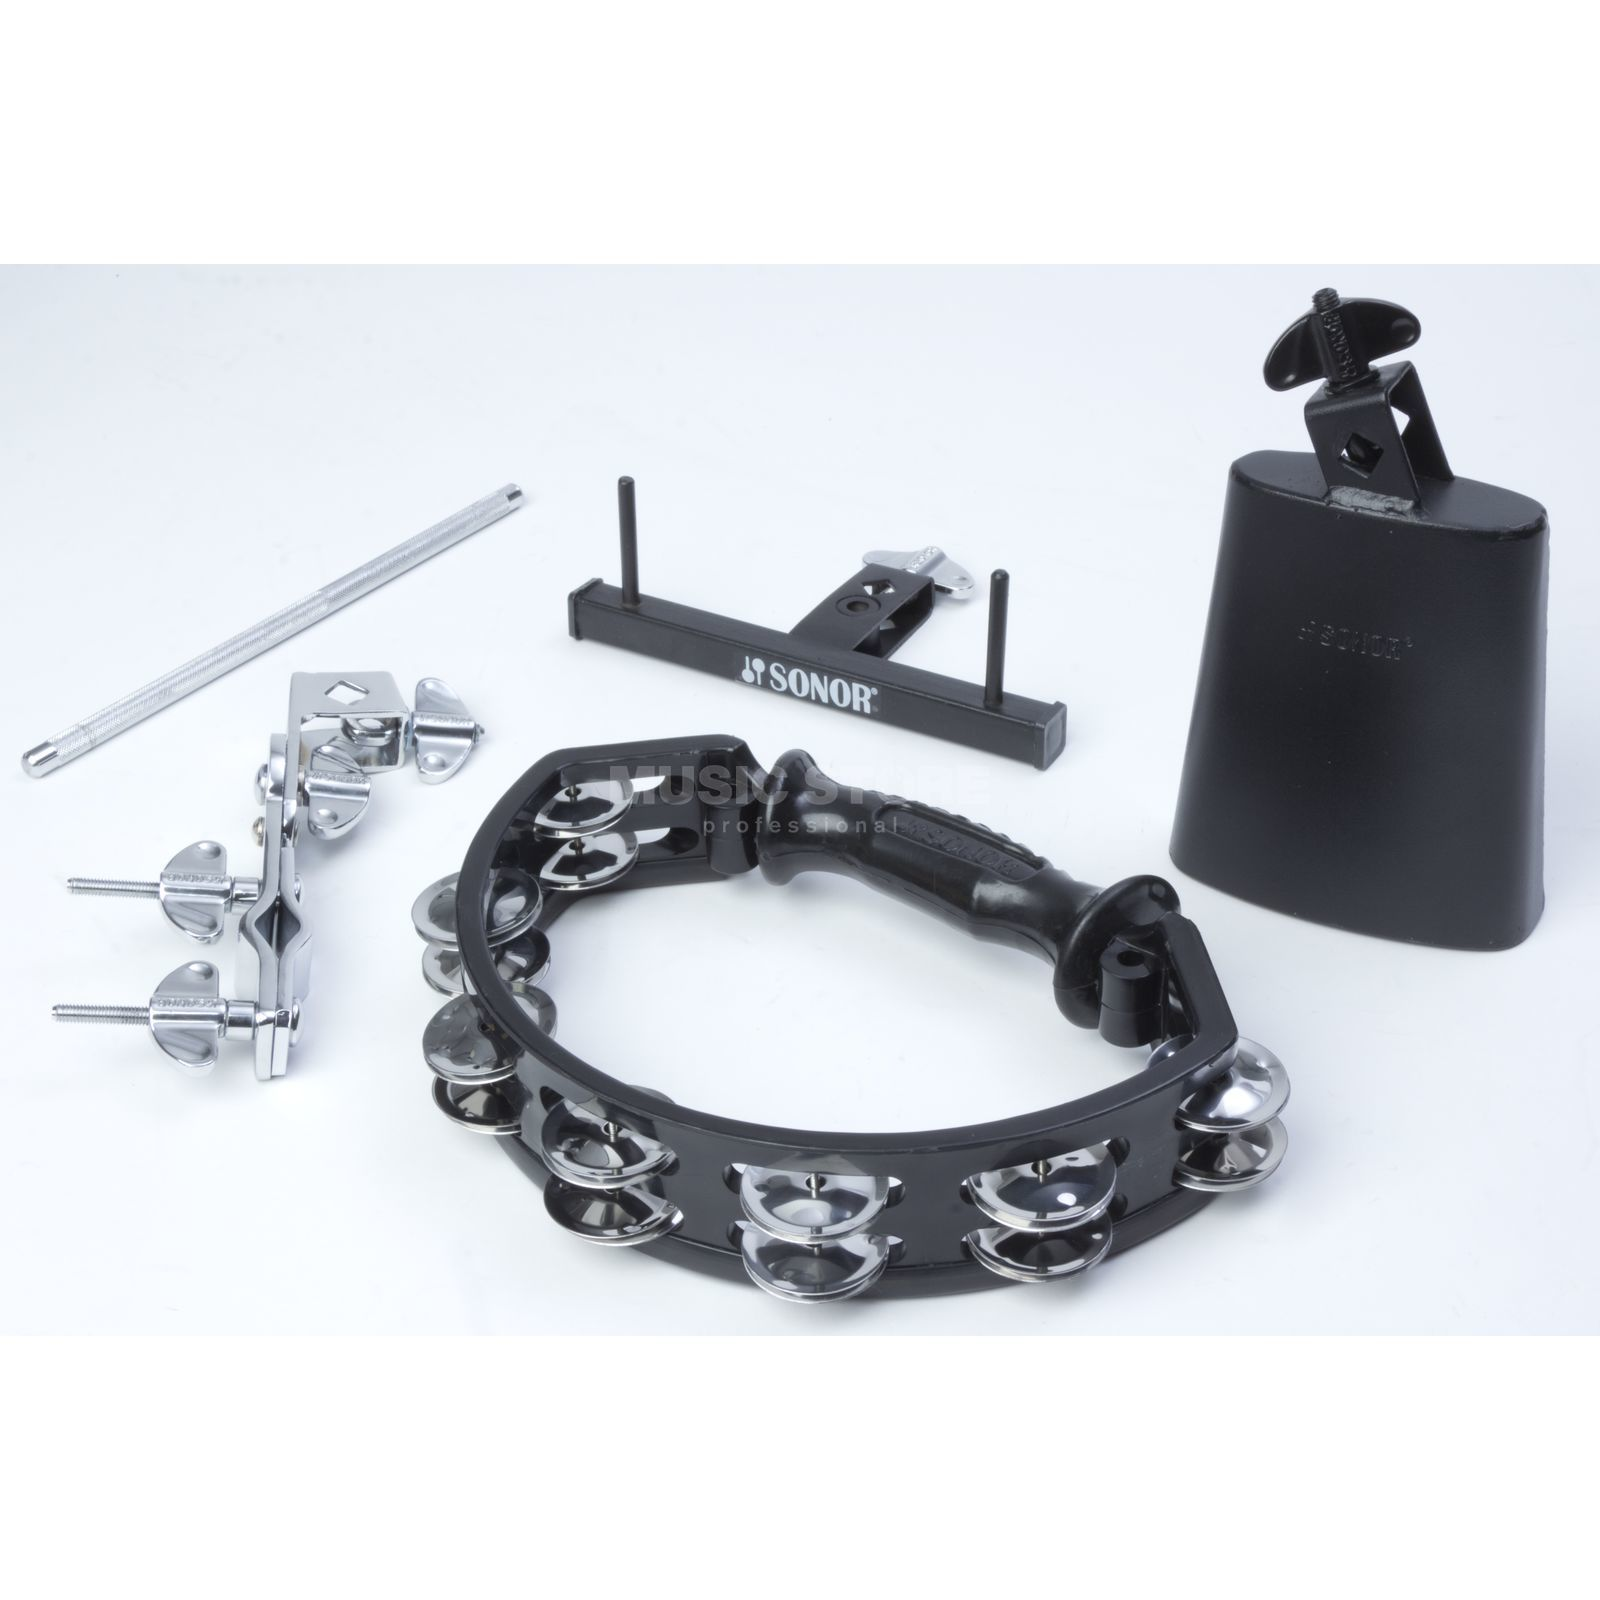 Sonor Cloche RHYTHM Add-on Package, tambourin, support Image du produit